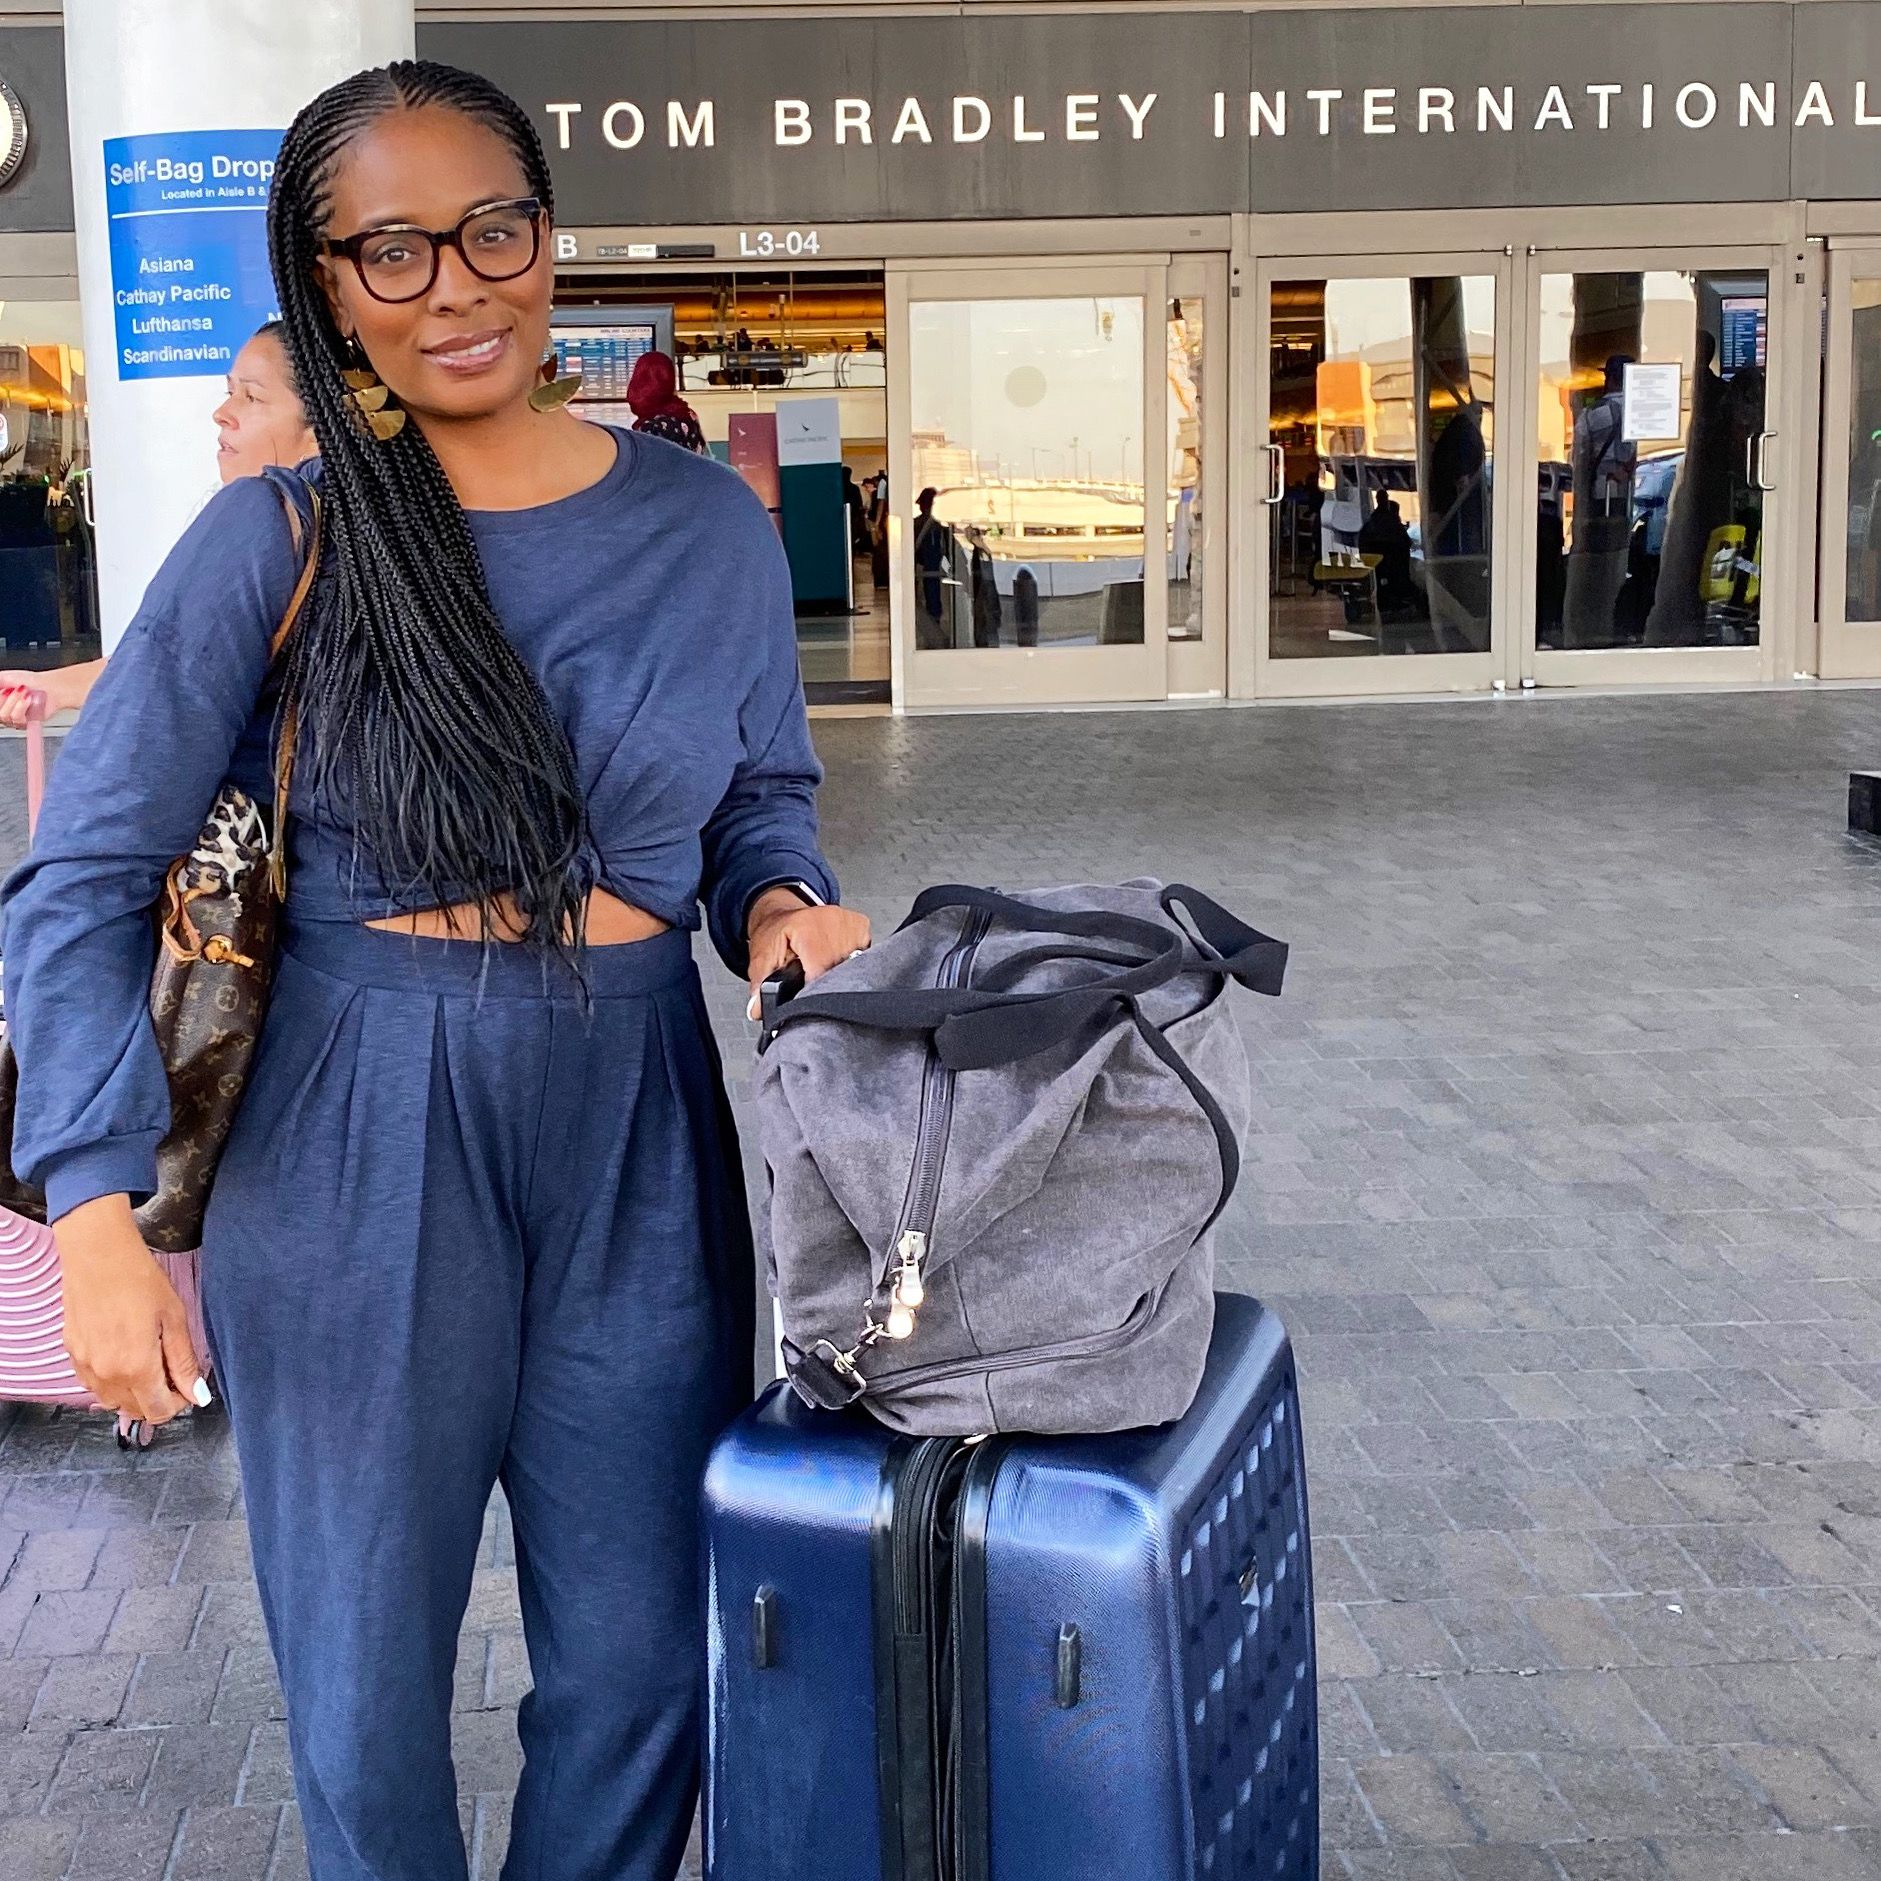 Finding ways to be fashionable and functional when traveling can be hard, but with a little planning its not impossible. #travelfashion #fashiontips #traveltips #travelflow #travelstyle